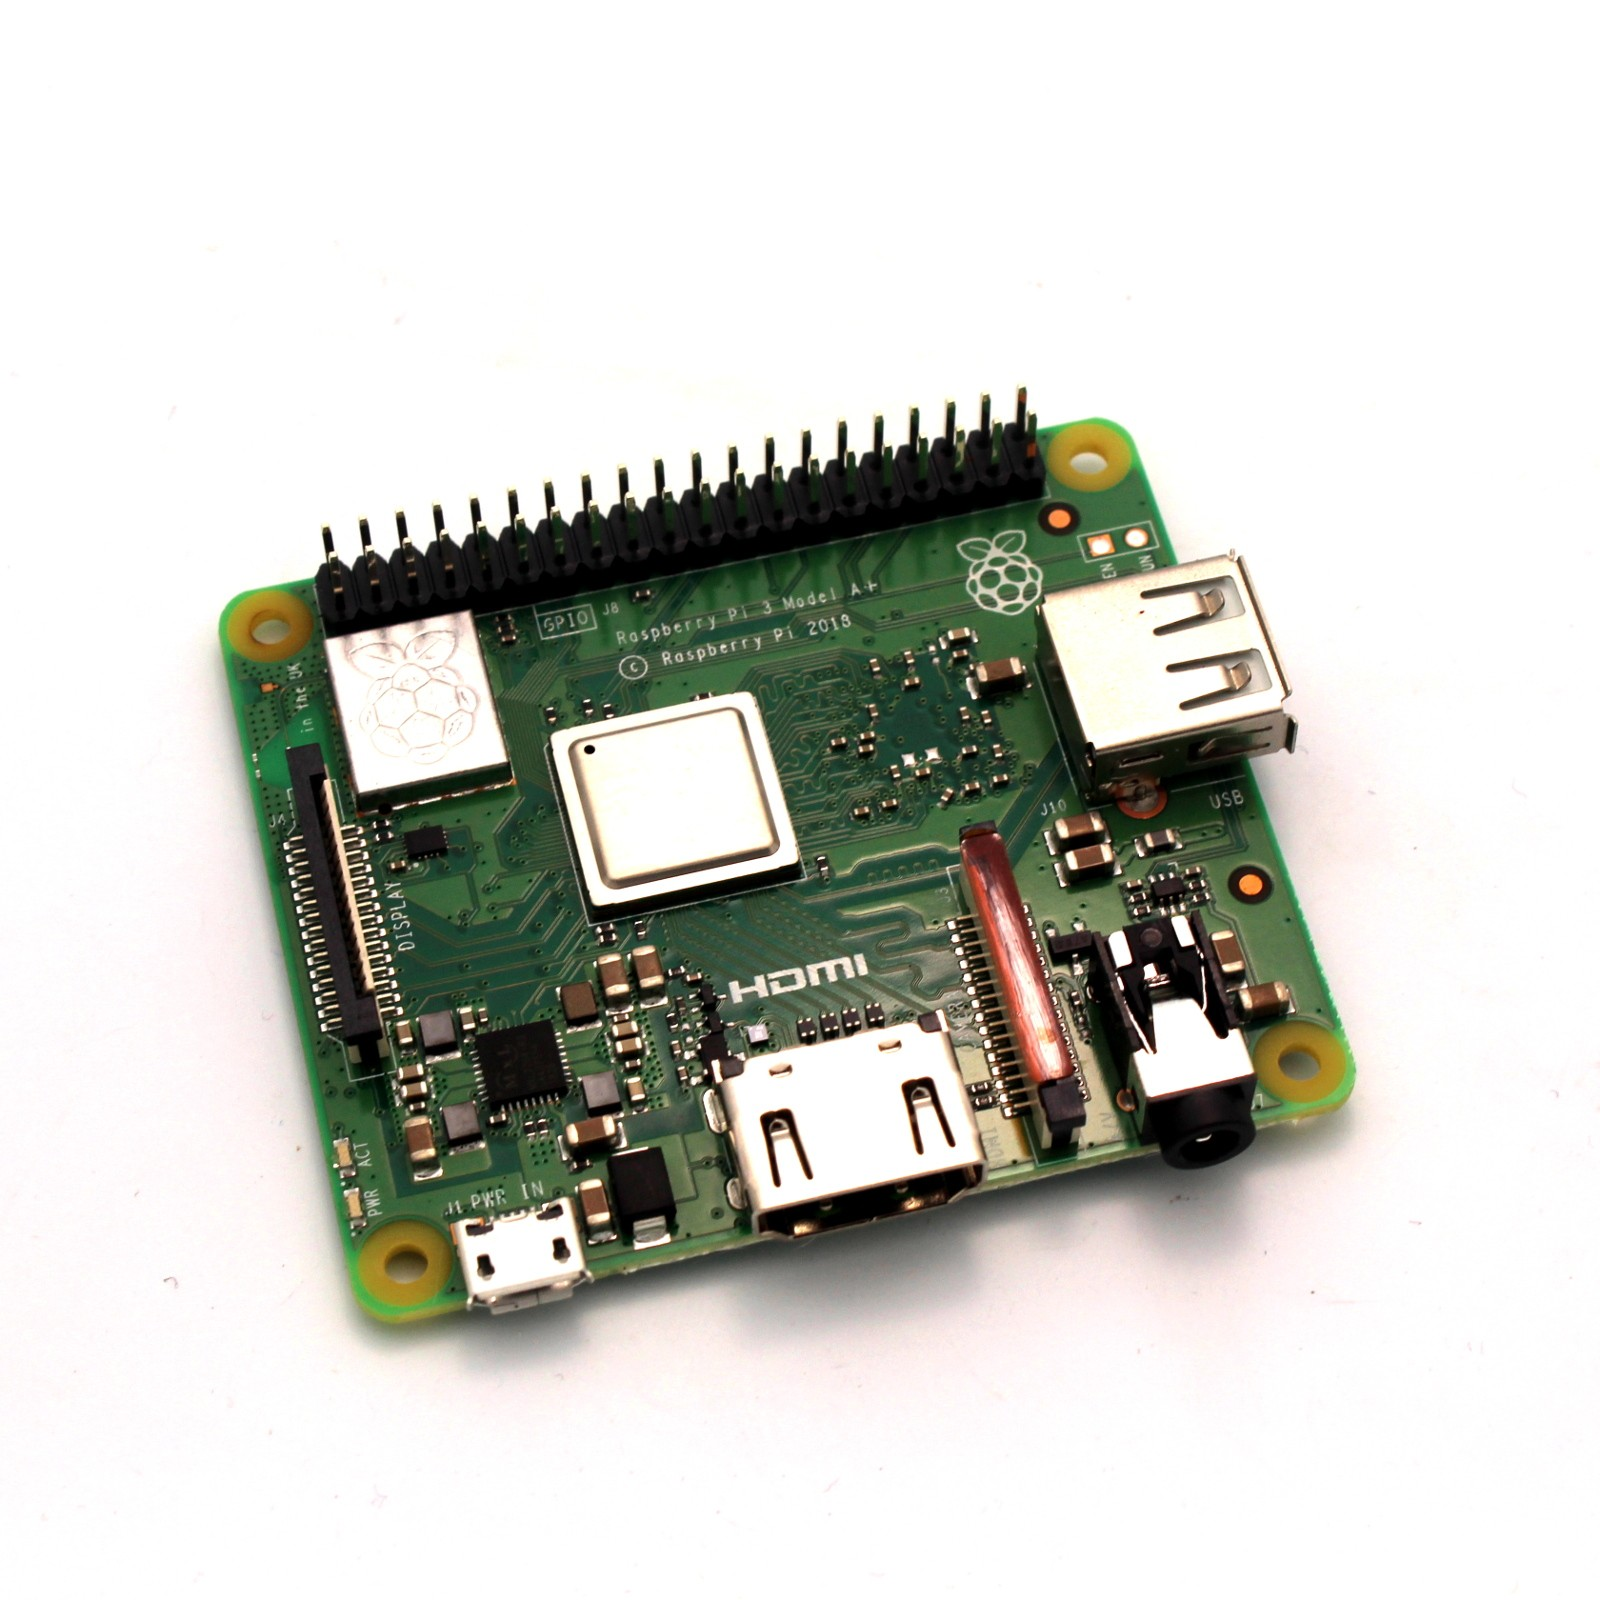 Raspberry Pi 3 Model A+: 512MB RAM 1 4Ghz - Tinkersphere